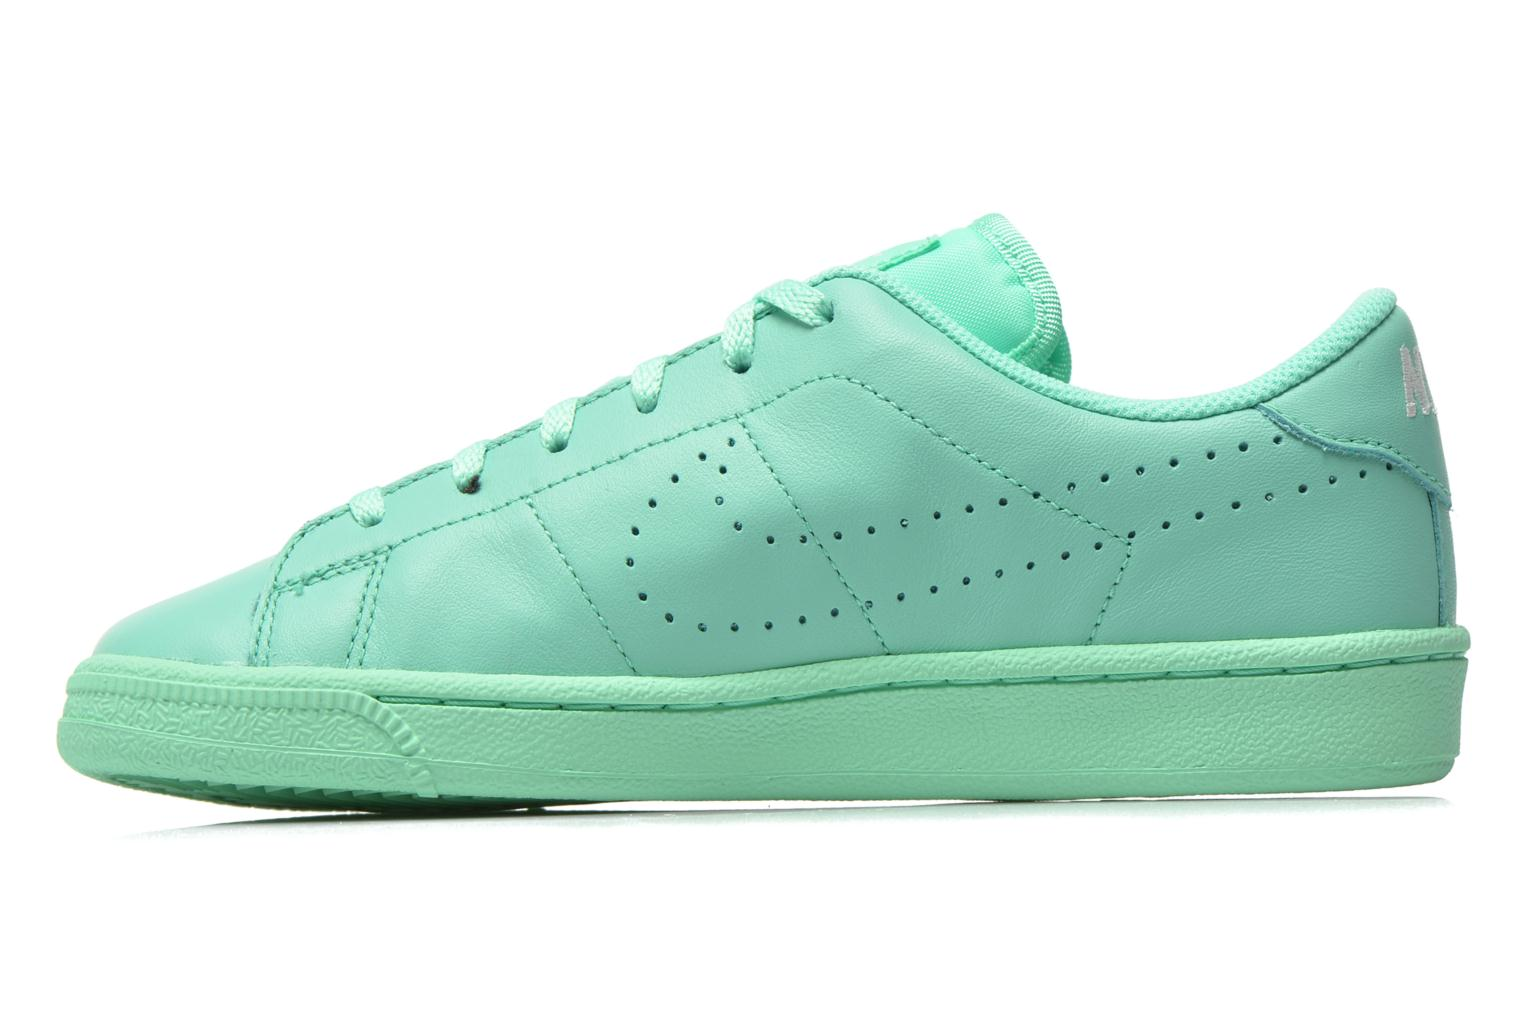 Tennis Classic Prm (Gs) Green Glow Green Glow-Brly Grn